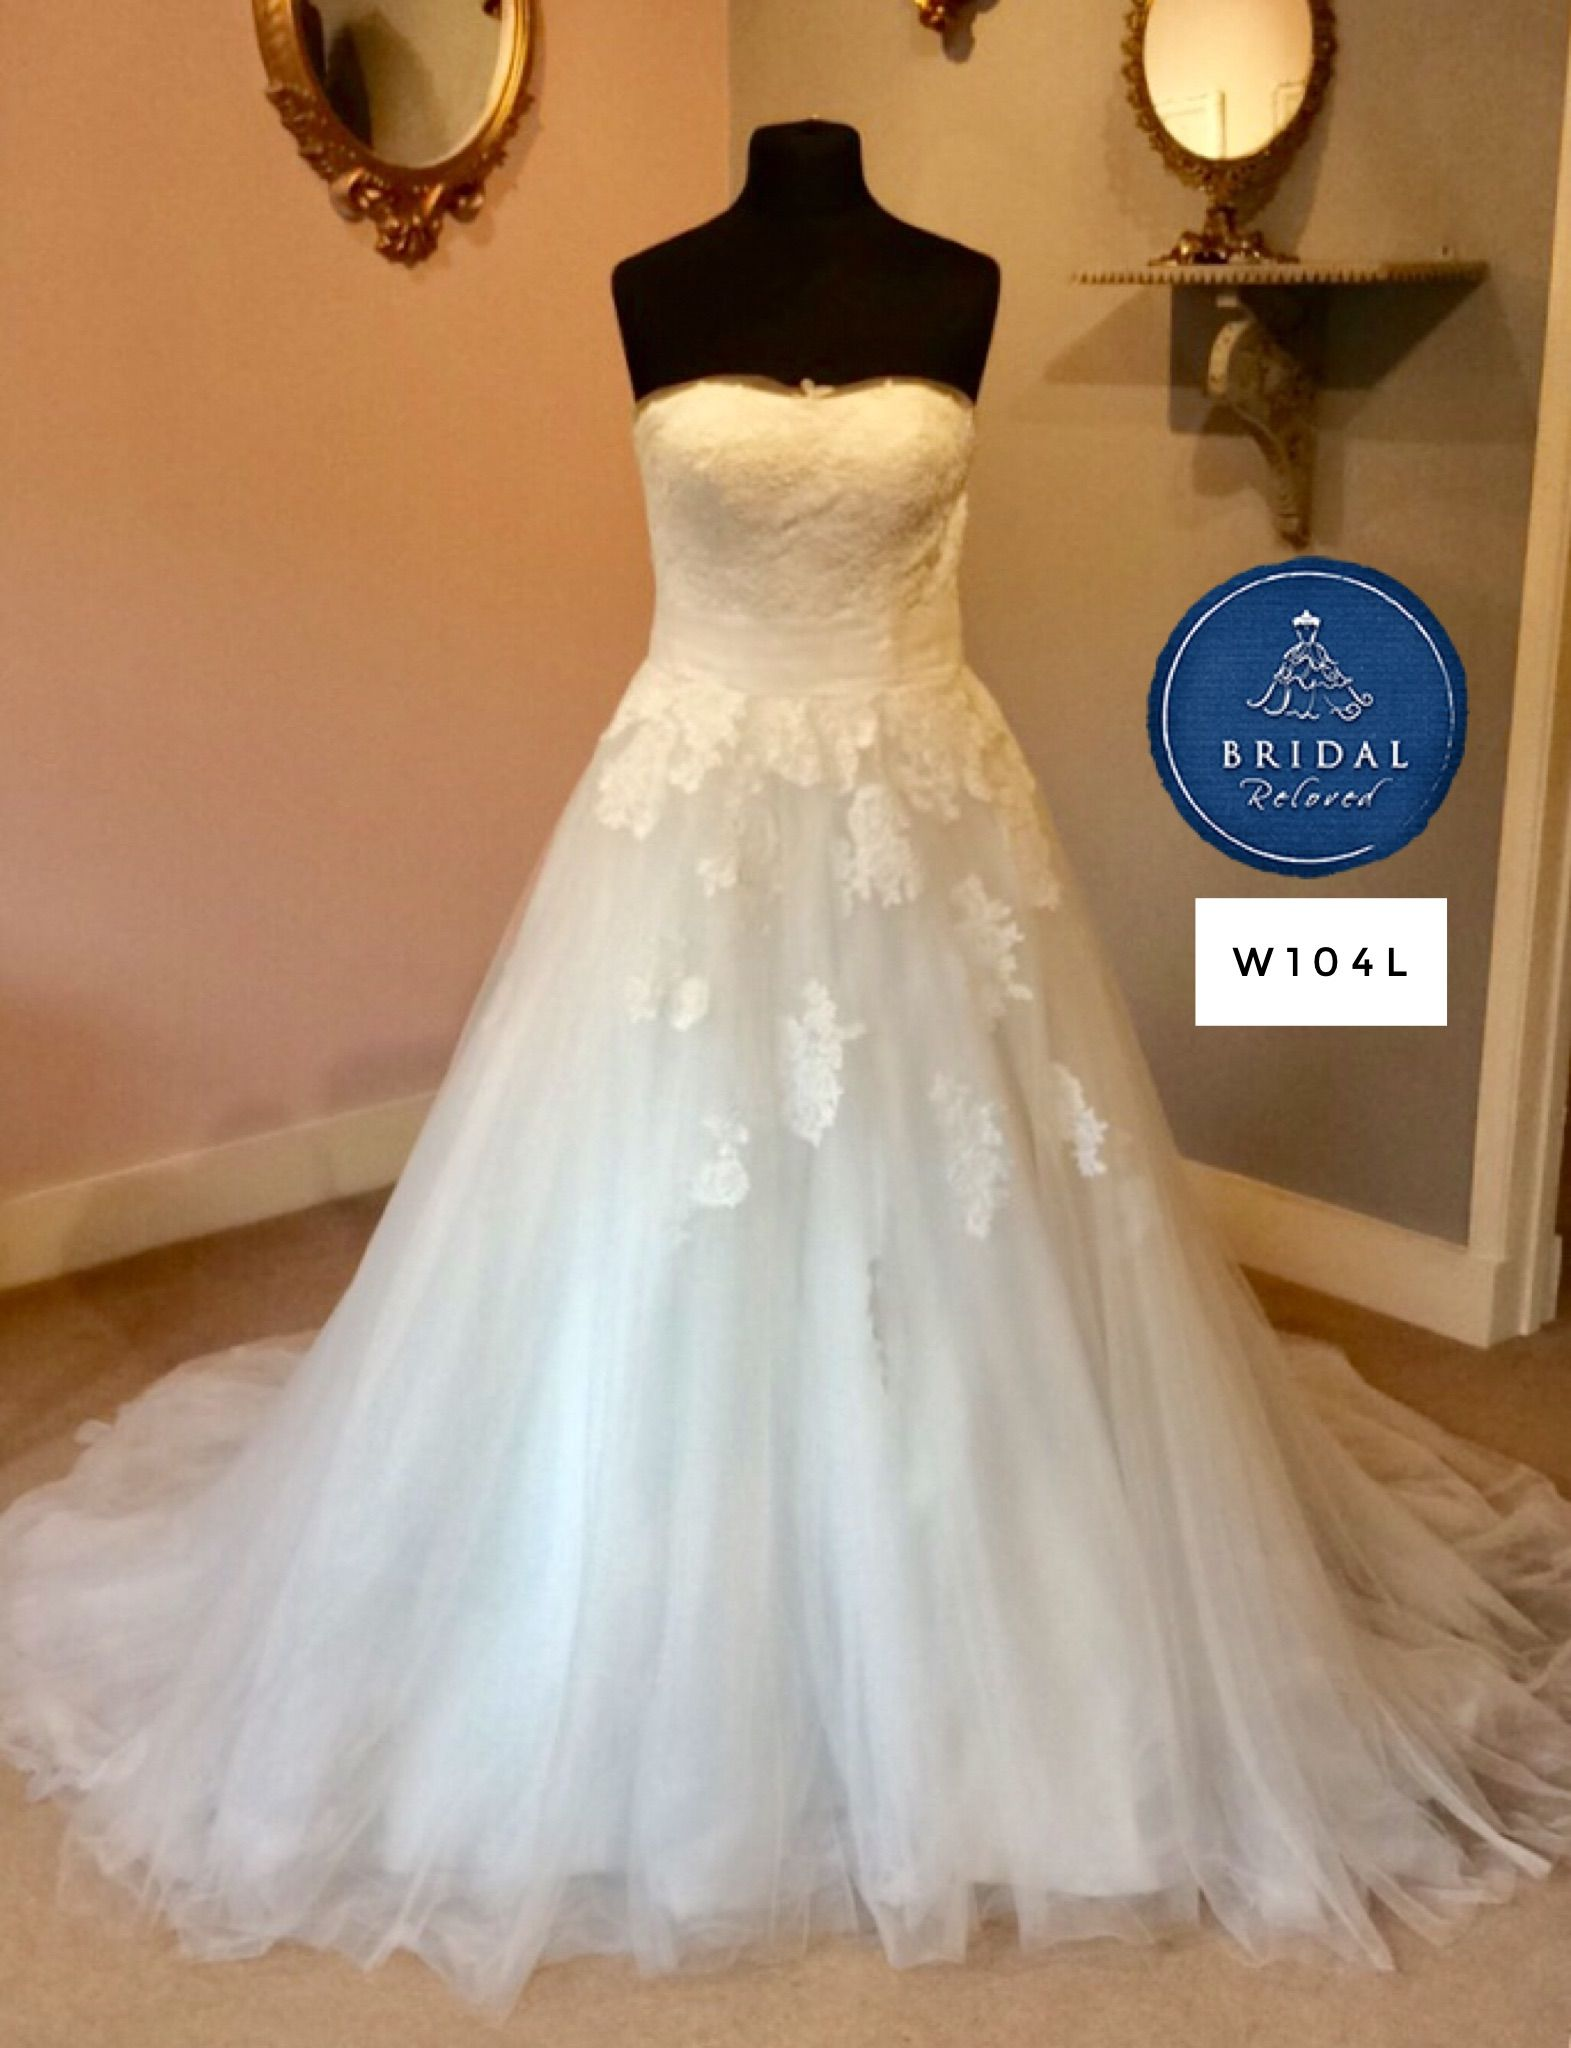 62e856d9f3783 ... Bridal Reloved Wallingford. Stunning lace princess gown by Justin  Alexander ...